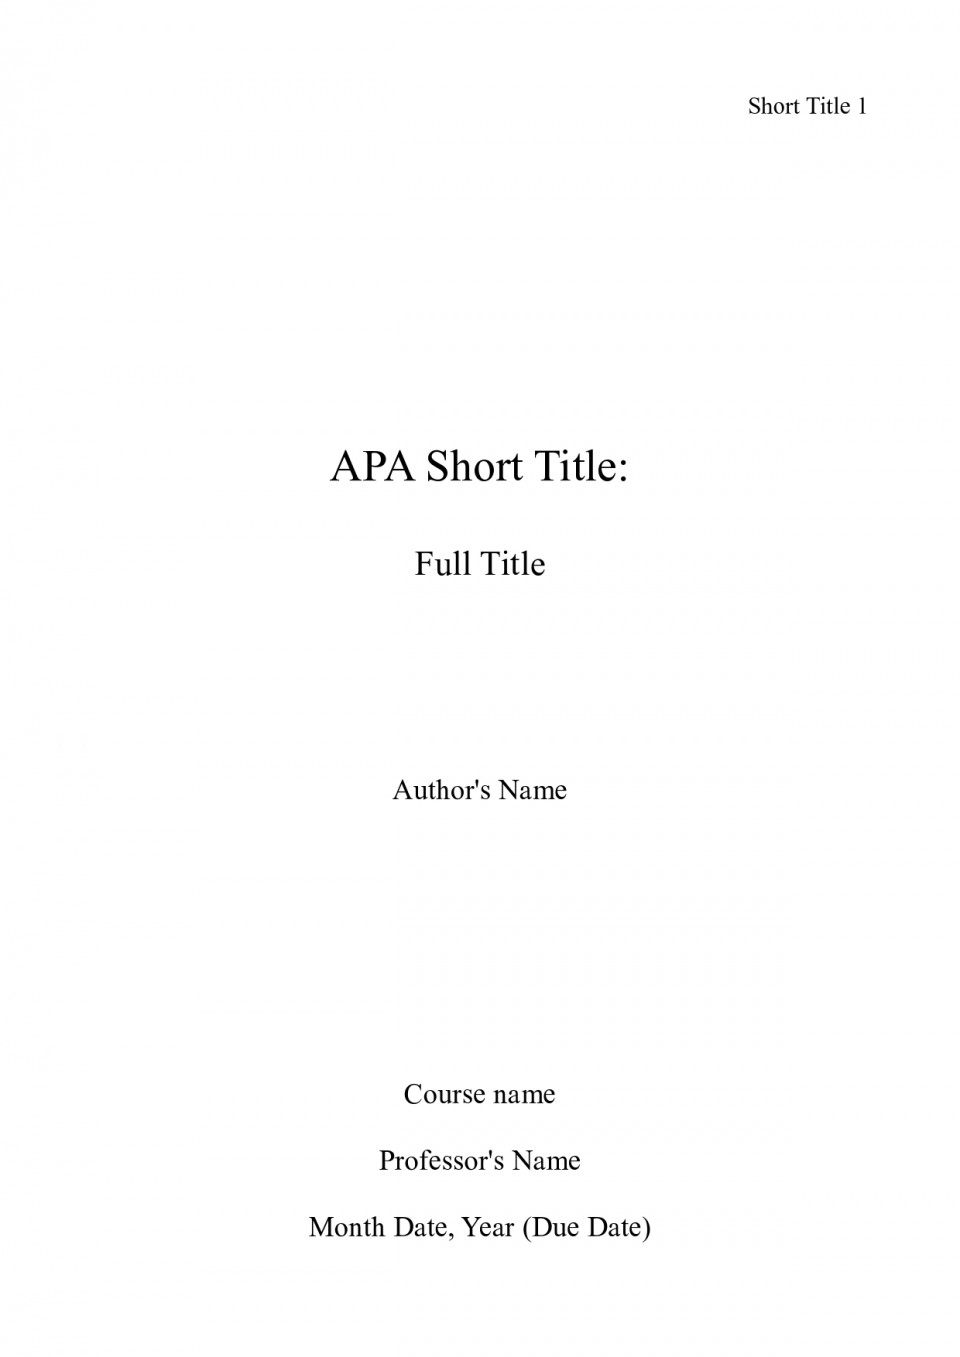 003 Front Page Of Term Paper Example Research Apa Title Unforgettable Sample 960